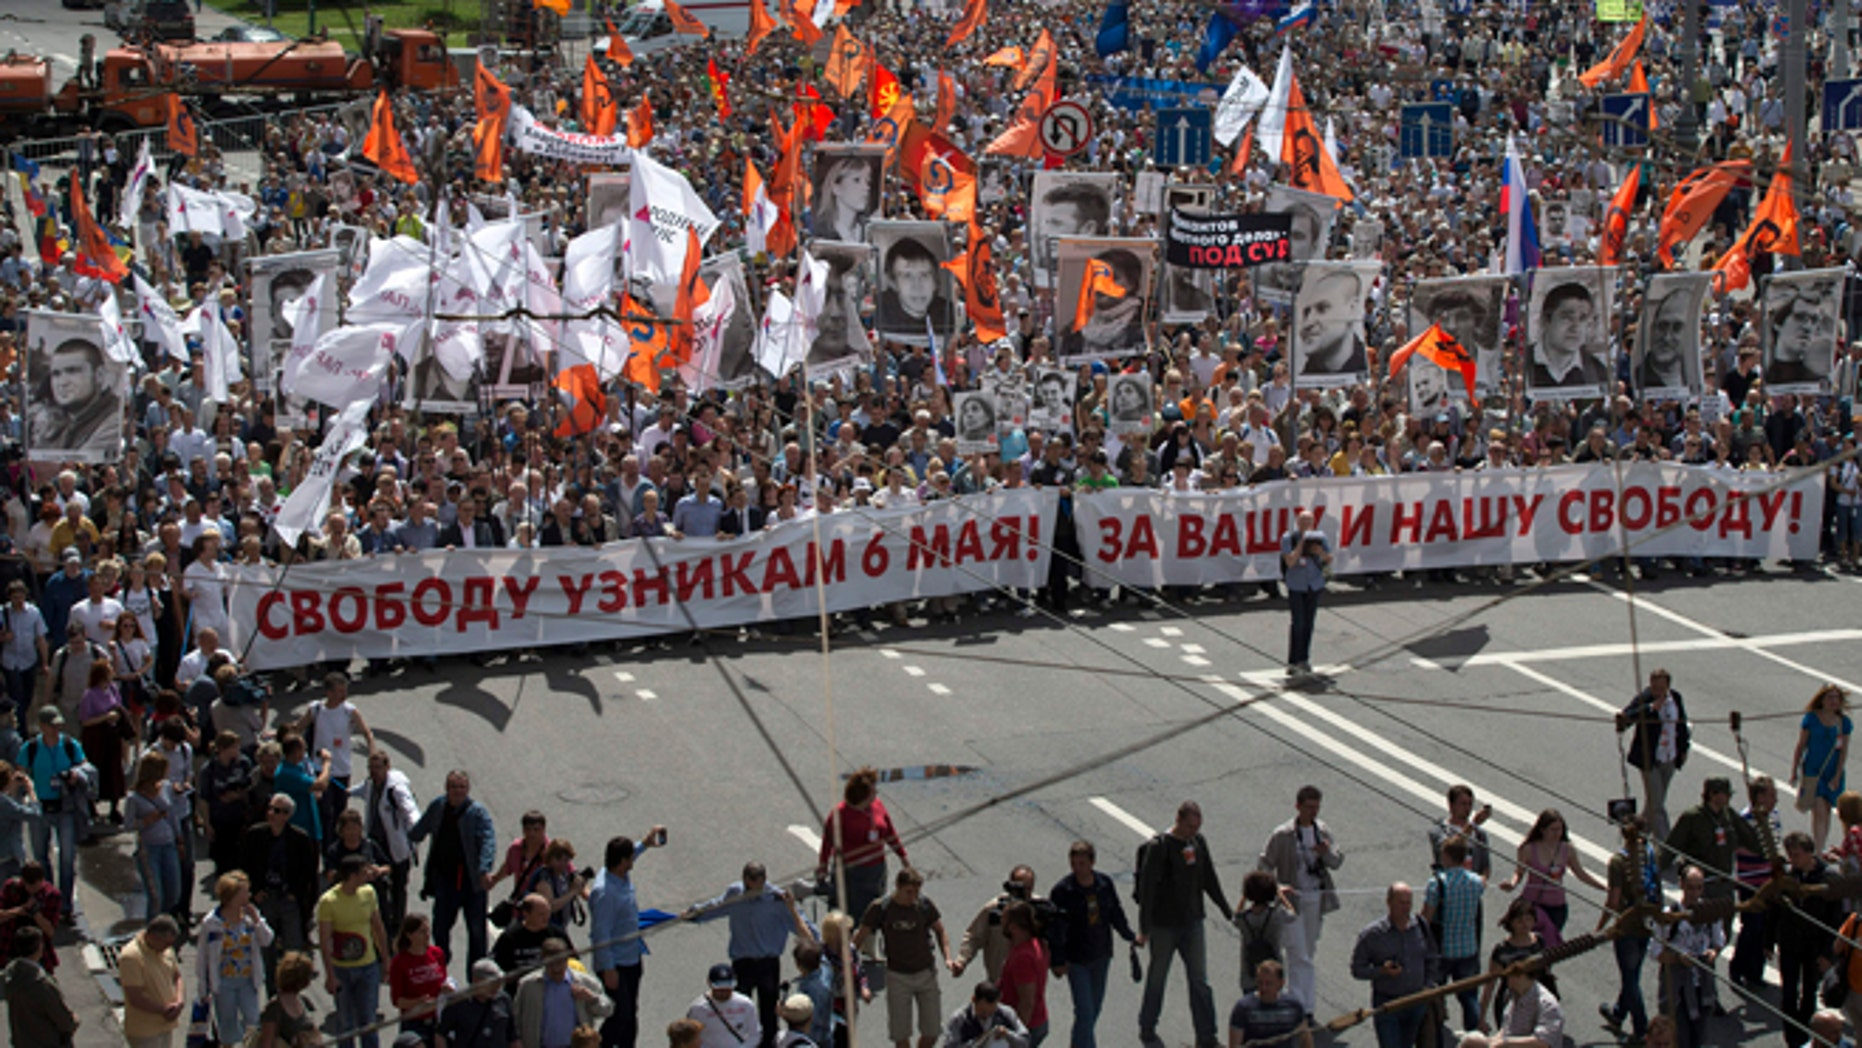 June 12, 2013: Russian opposition protesters some holding portraits of political prisoners  shout anti-Putin slogans as they march through a street next to the Kremlin in Moscow. Thousands of Russian opposition activists are marching through Moscow decrying President Vladimir Putin's authoritarian rule and calling for the release of people they consider political prisoners.